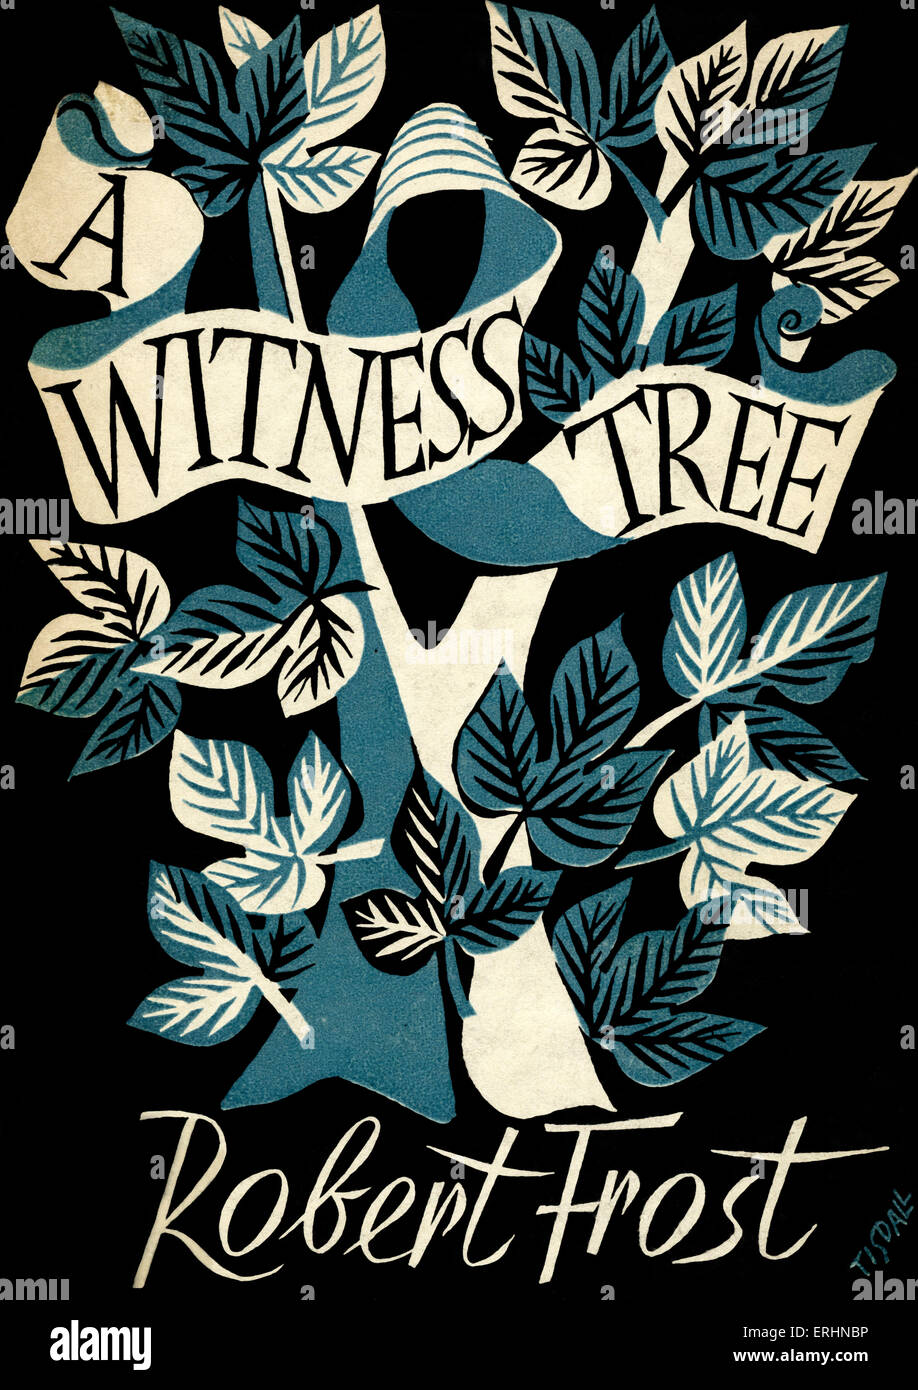 A Witness Tree by Robert Frost - Book cover  A collection of